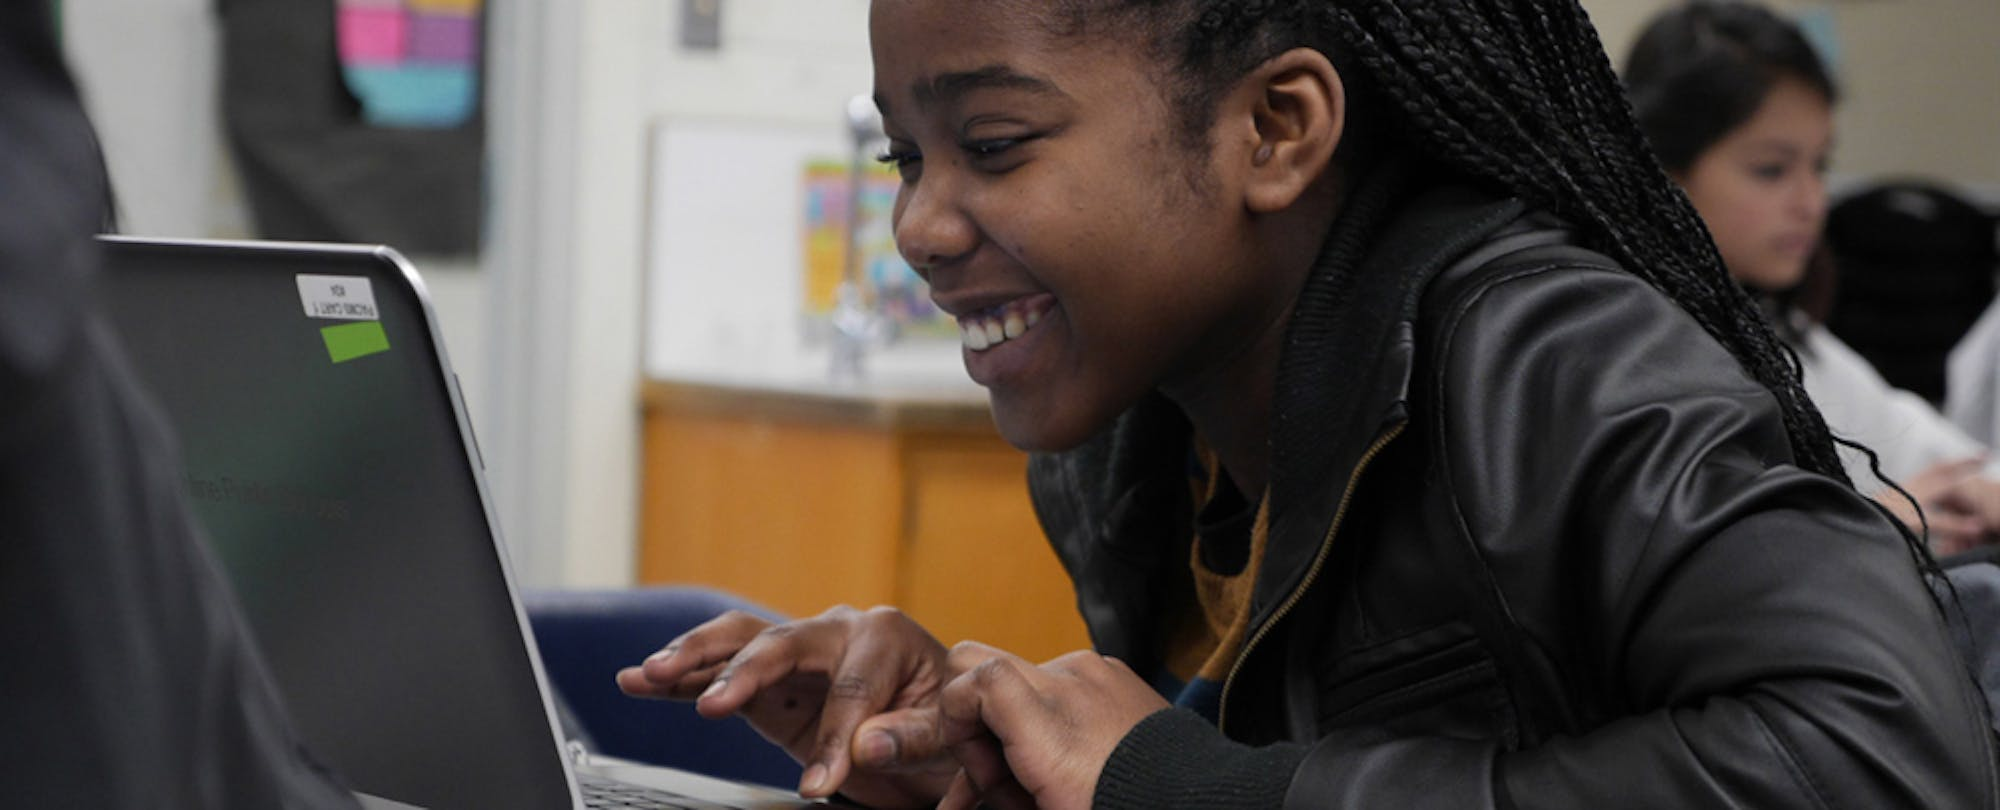 How to Increase Diversity in Tech? Bring Computer Science Into Schools